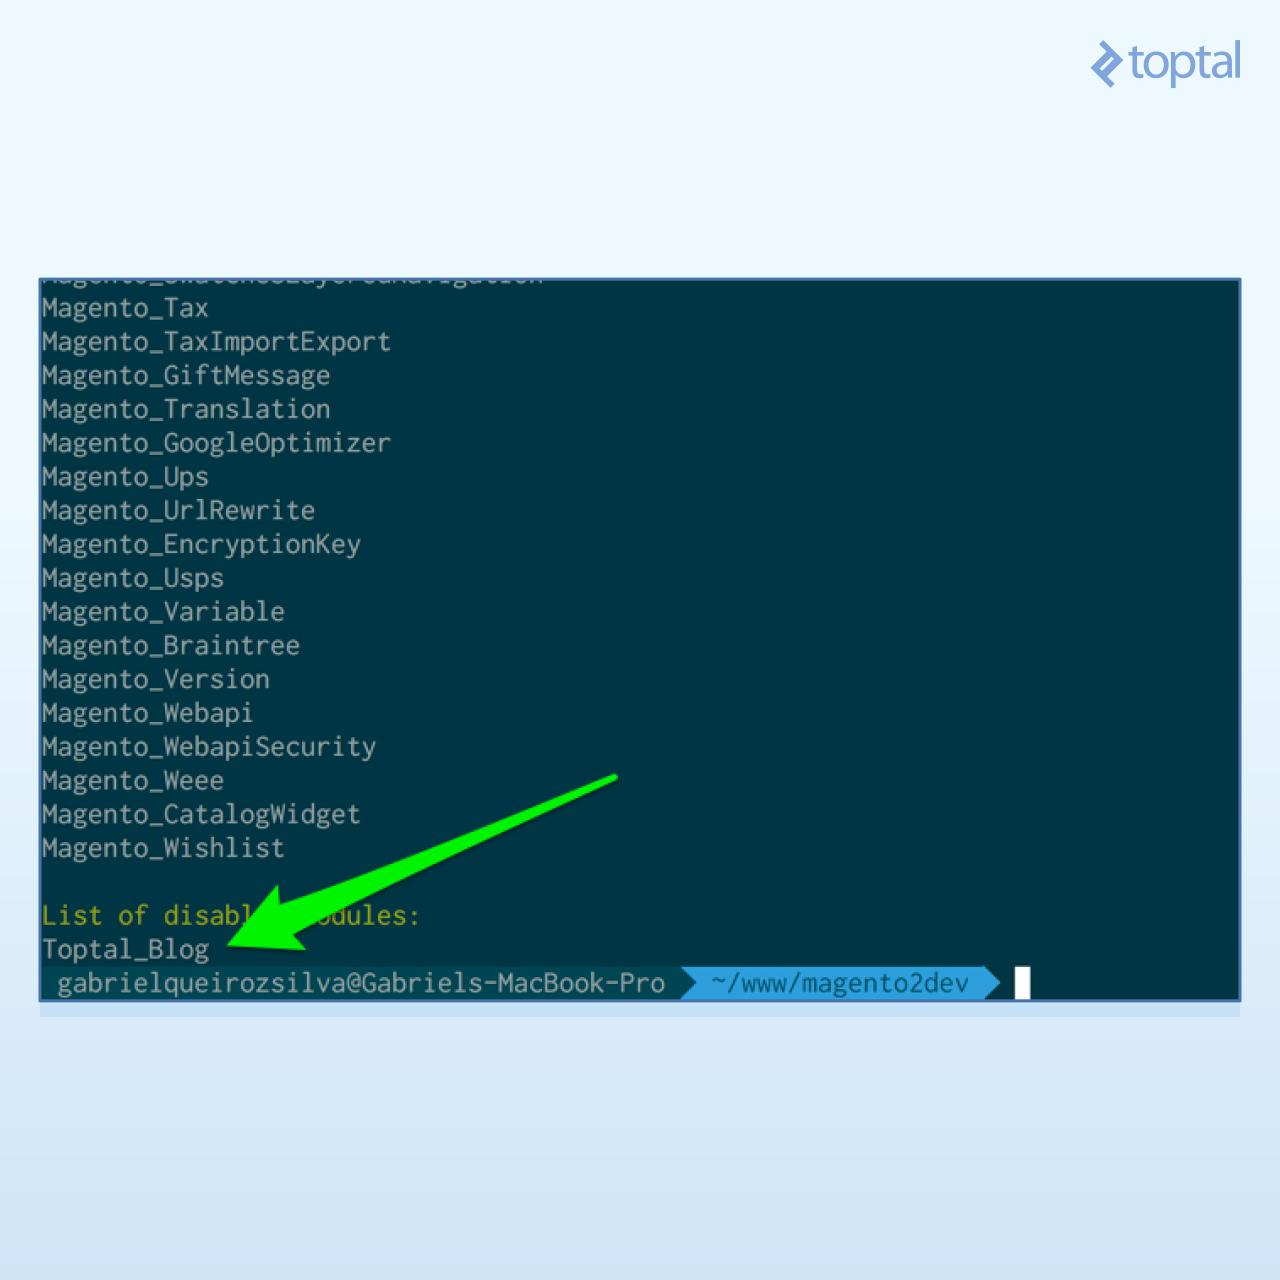 Output of status command, showing Toptal_Blog module being disabled